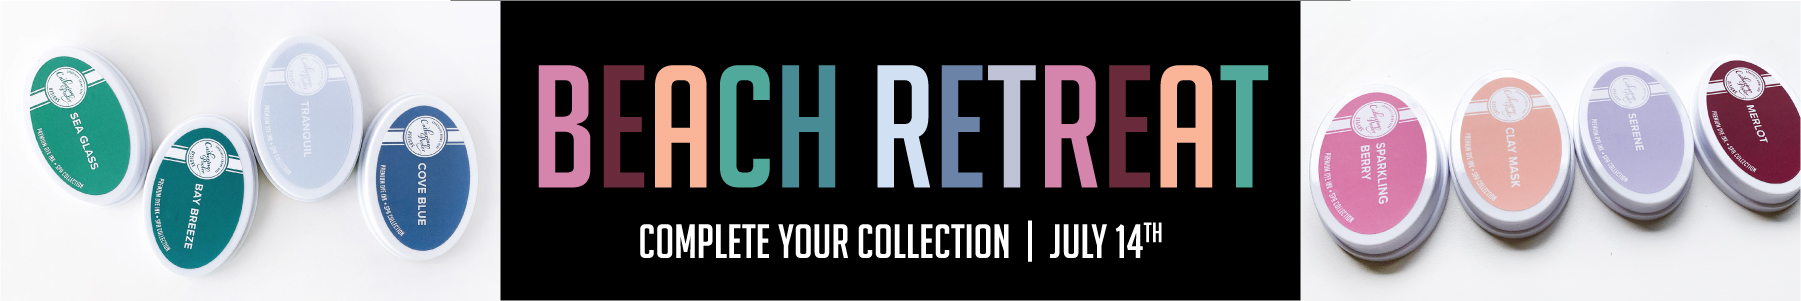 header for Beach Retreat ink collection with photo of ink colors